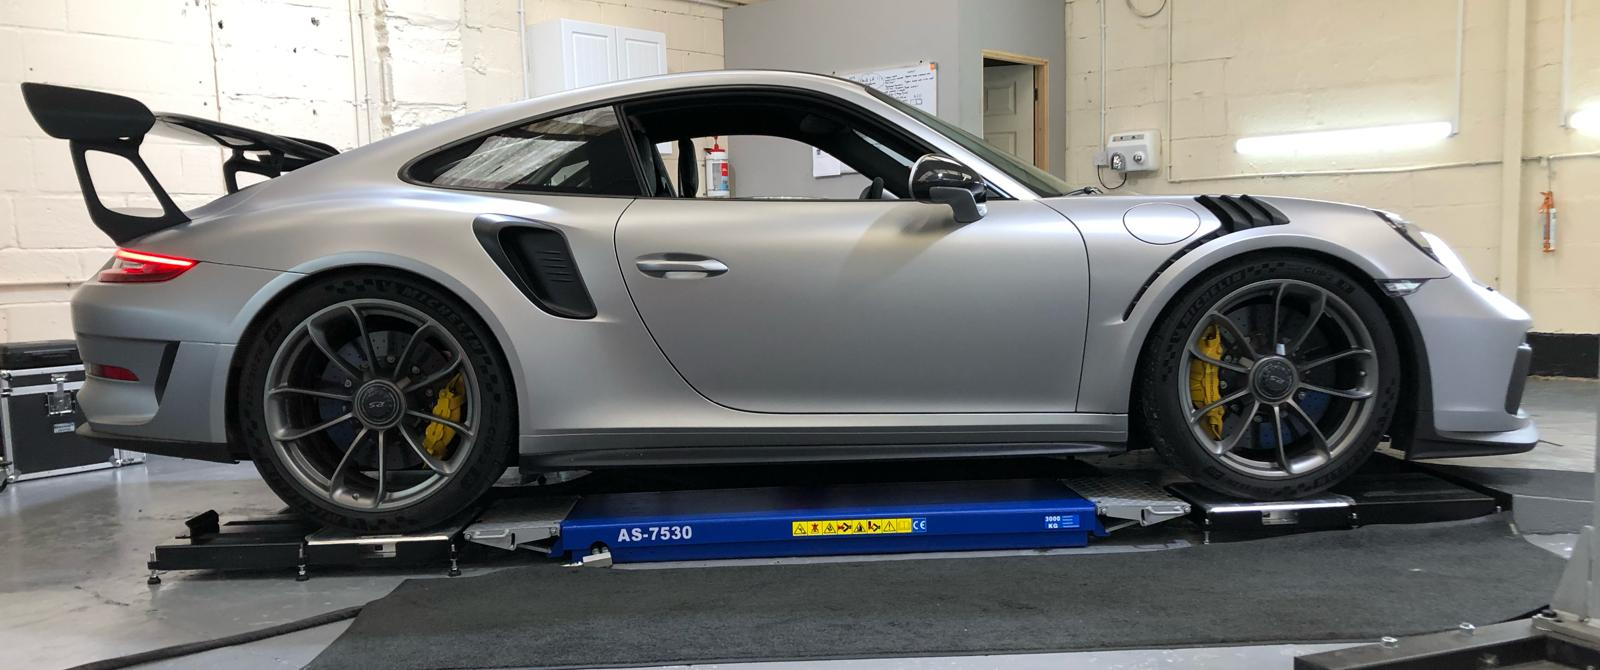 Porsche corner weight set up